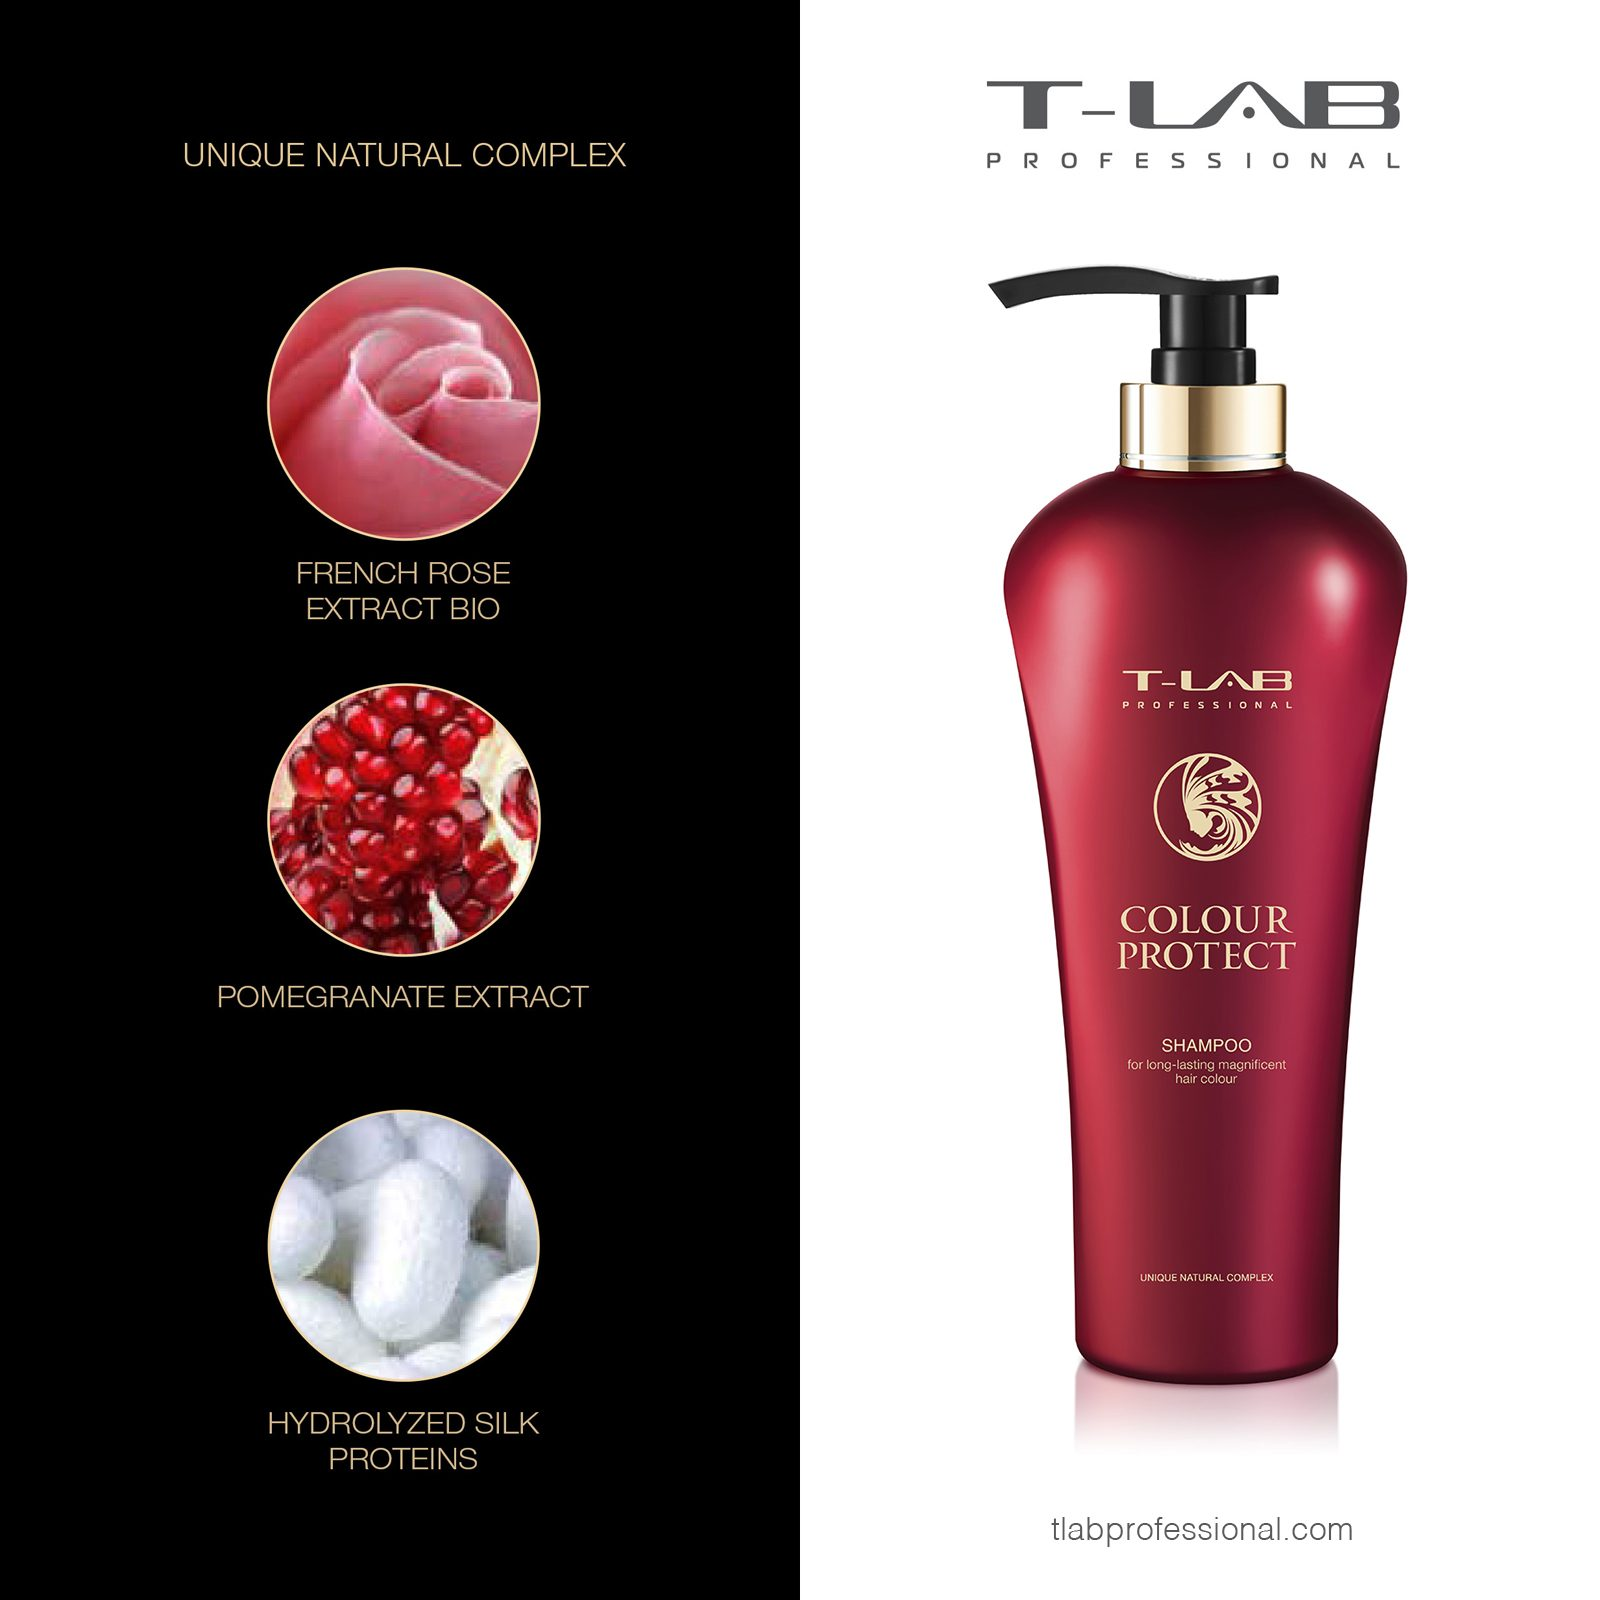 COLOUR PROTECT SHAMPOO: FRENCH ROSE EXTRACT BIO, POMEGRANATE EXTRACT, HYDROLIZED SILK PROTEINS